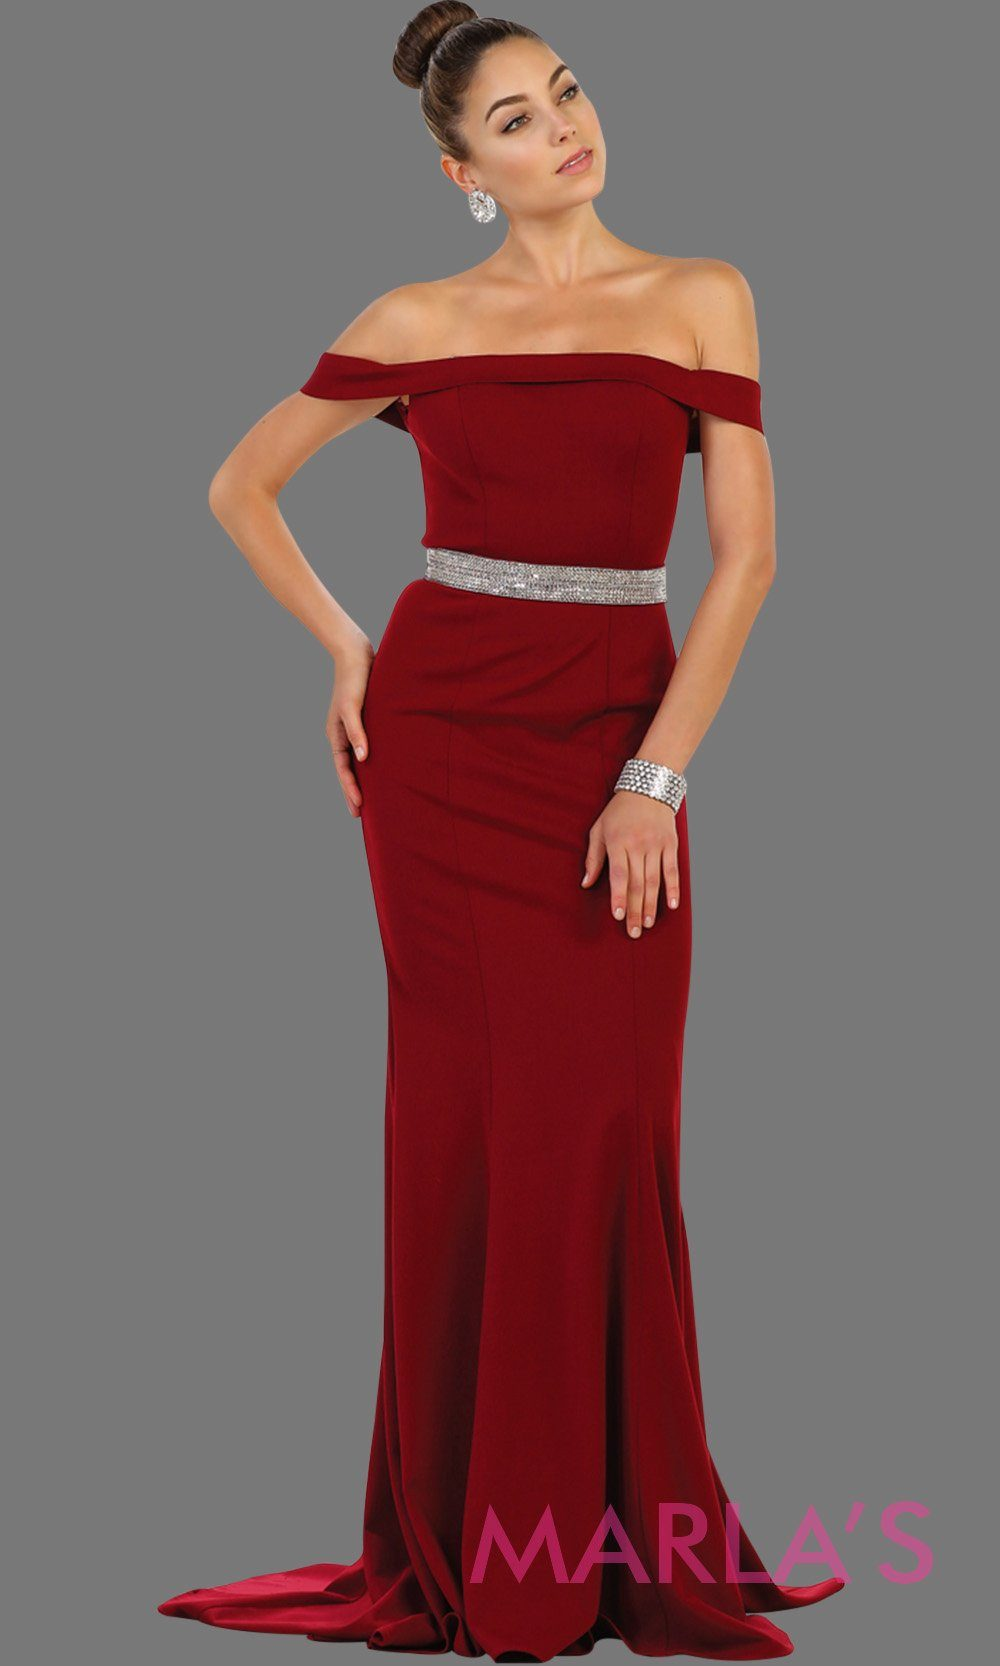 Long fitted burgundy off shoulder party dress with rhinestone belt. Perfect for dark red bridesmaid dresses, prom, wedding guest dress, pink formal party gown, sleek and sexy party gown. Available in Plus Sizes.